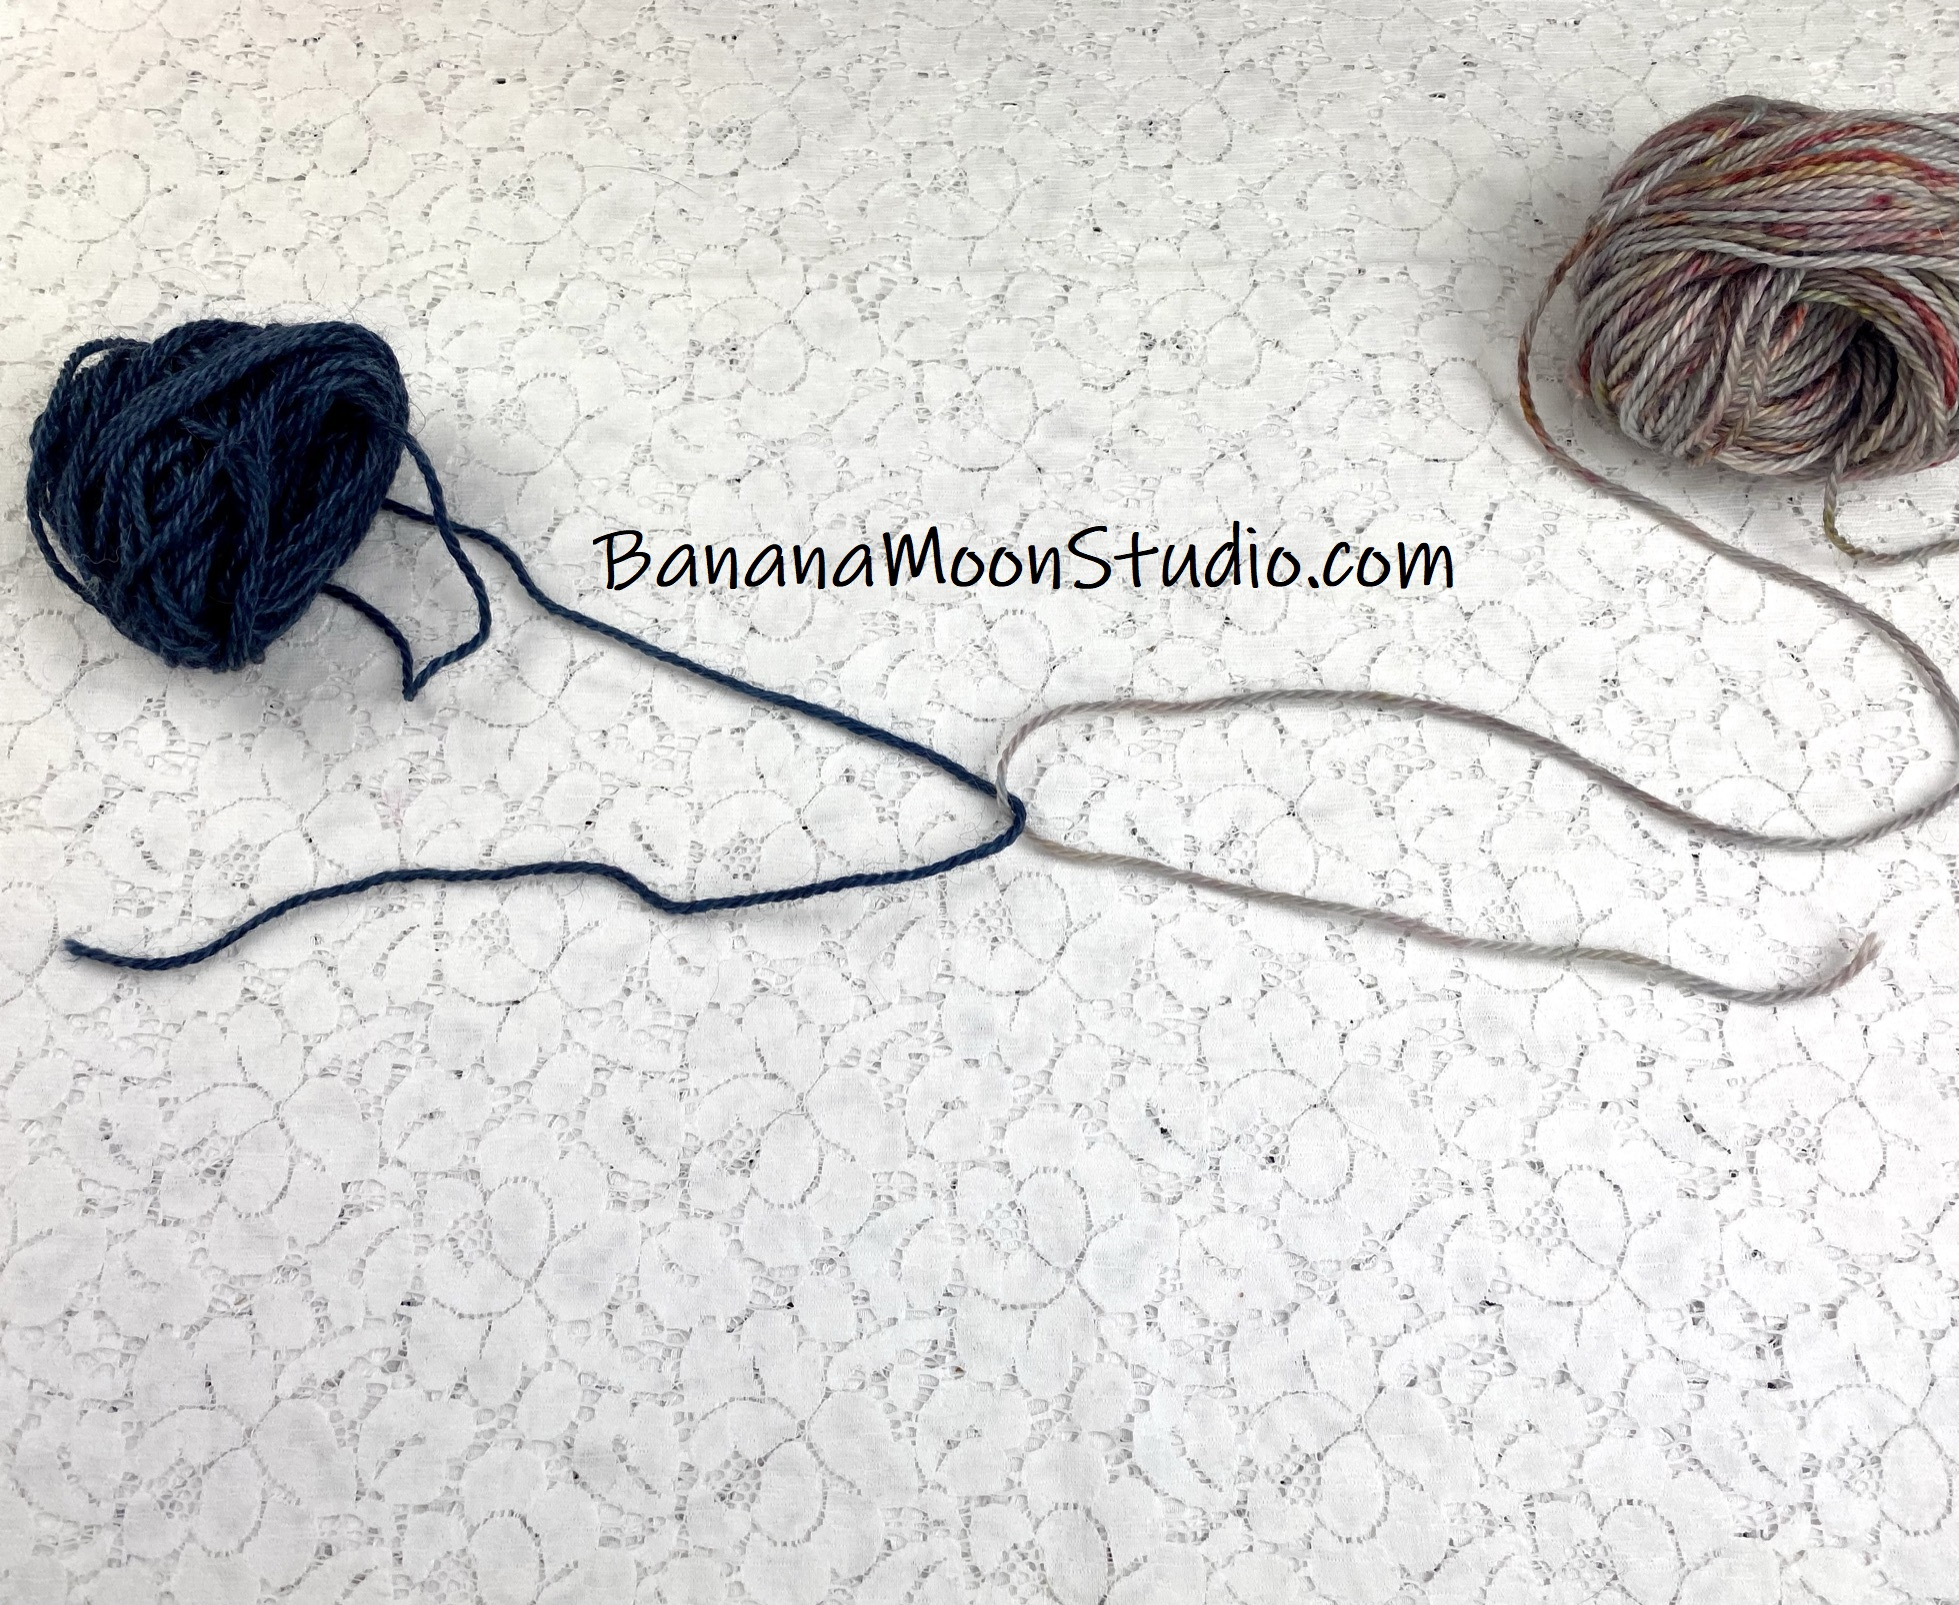 Joining in a new ball of yarn with a Russian knot for crochet or knitting. Tutorial from Banana Moon Studio.